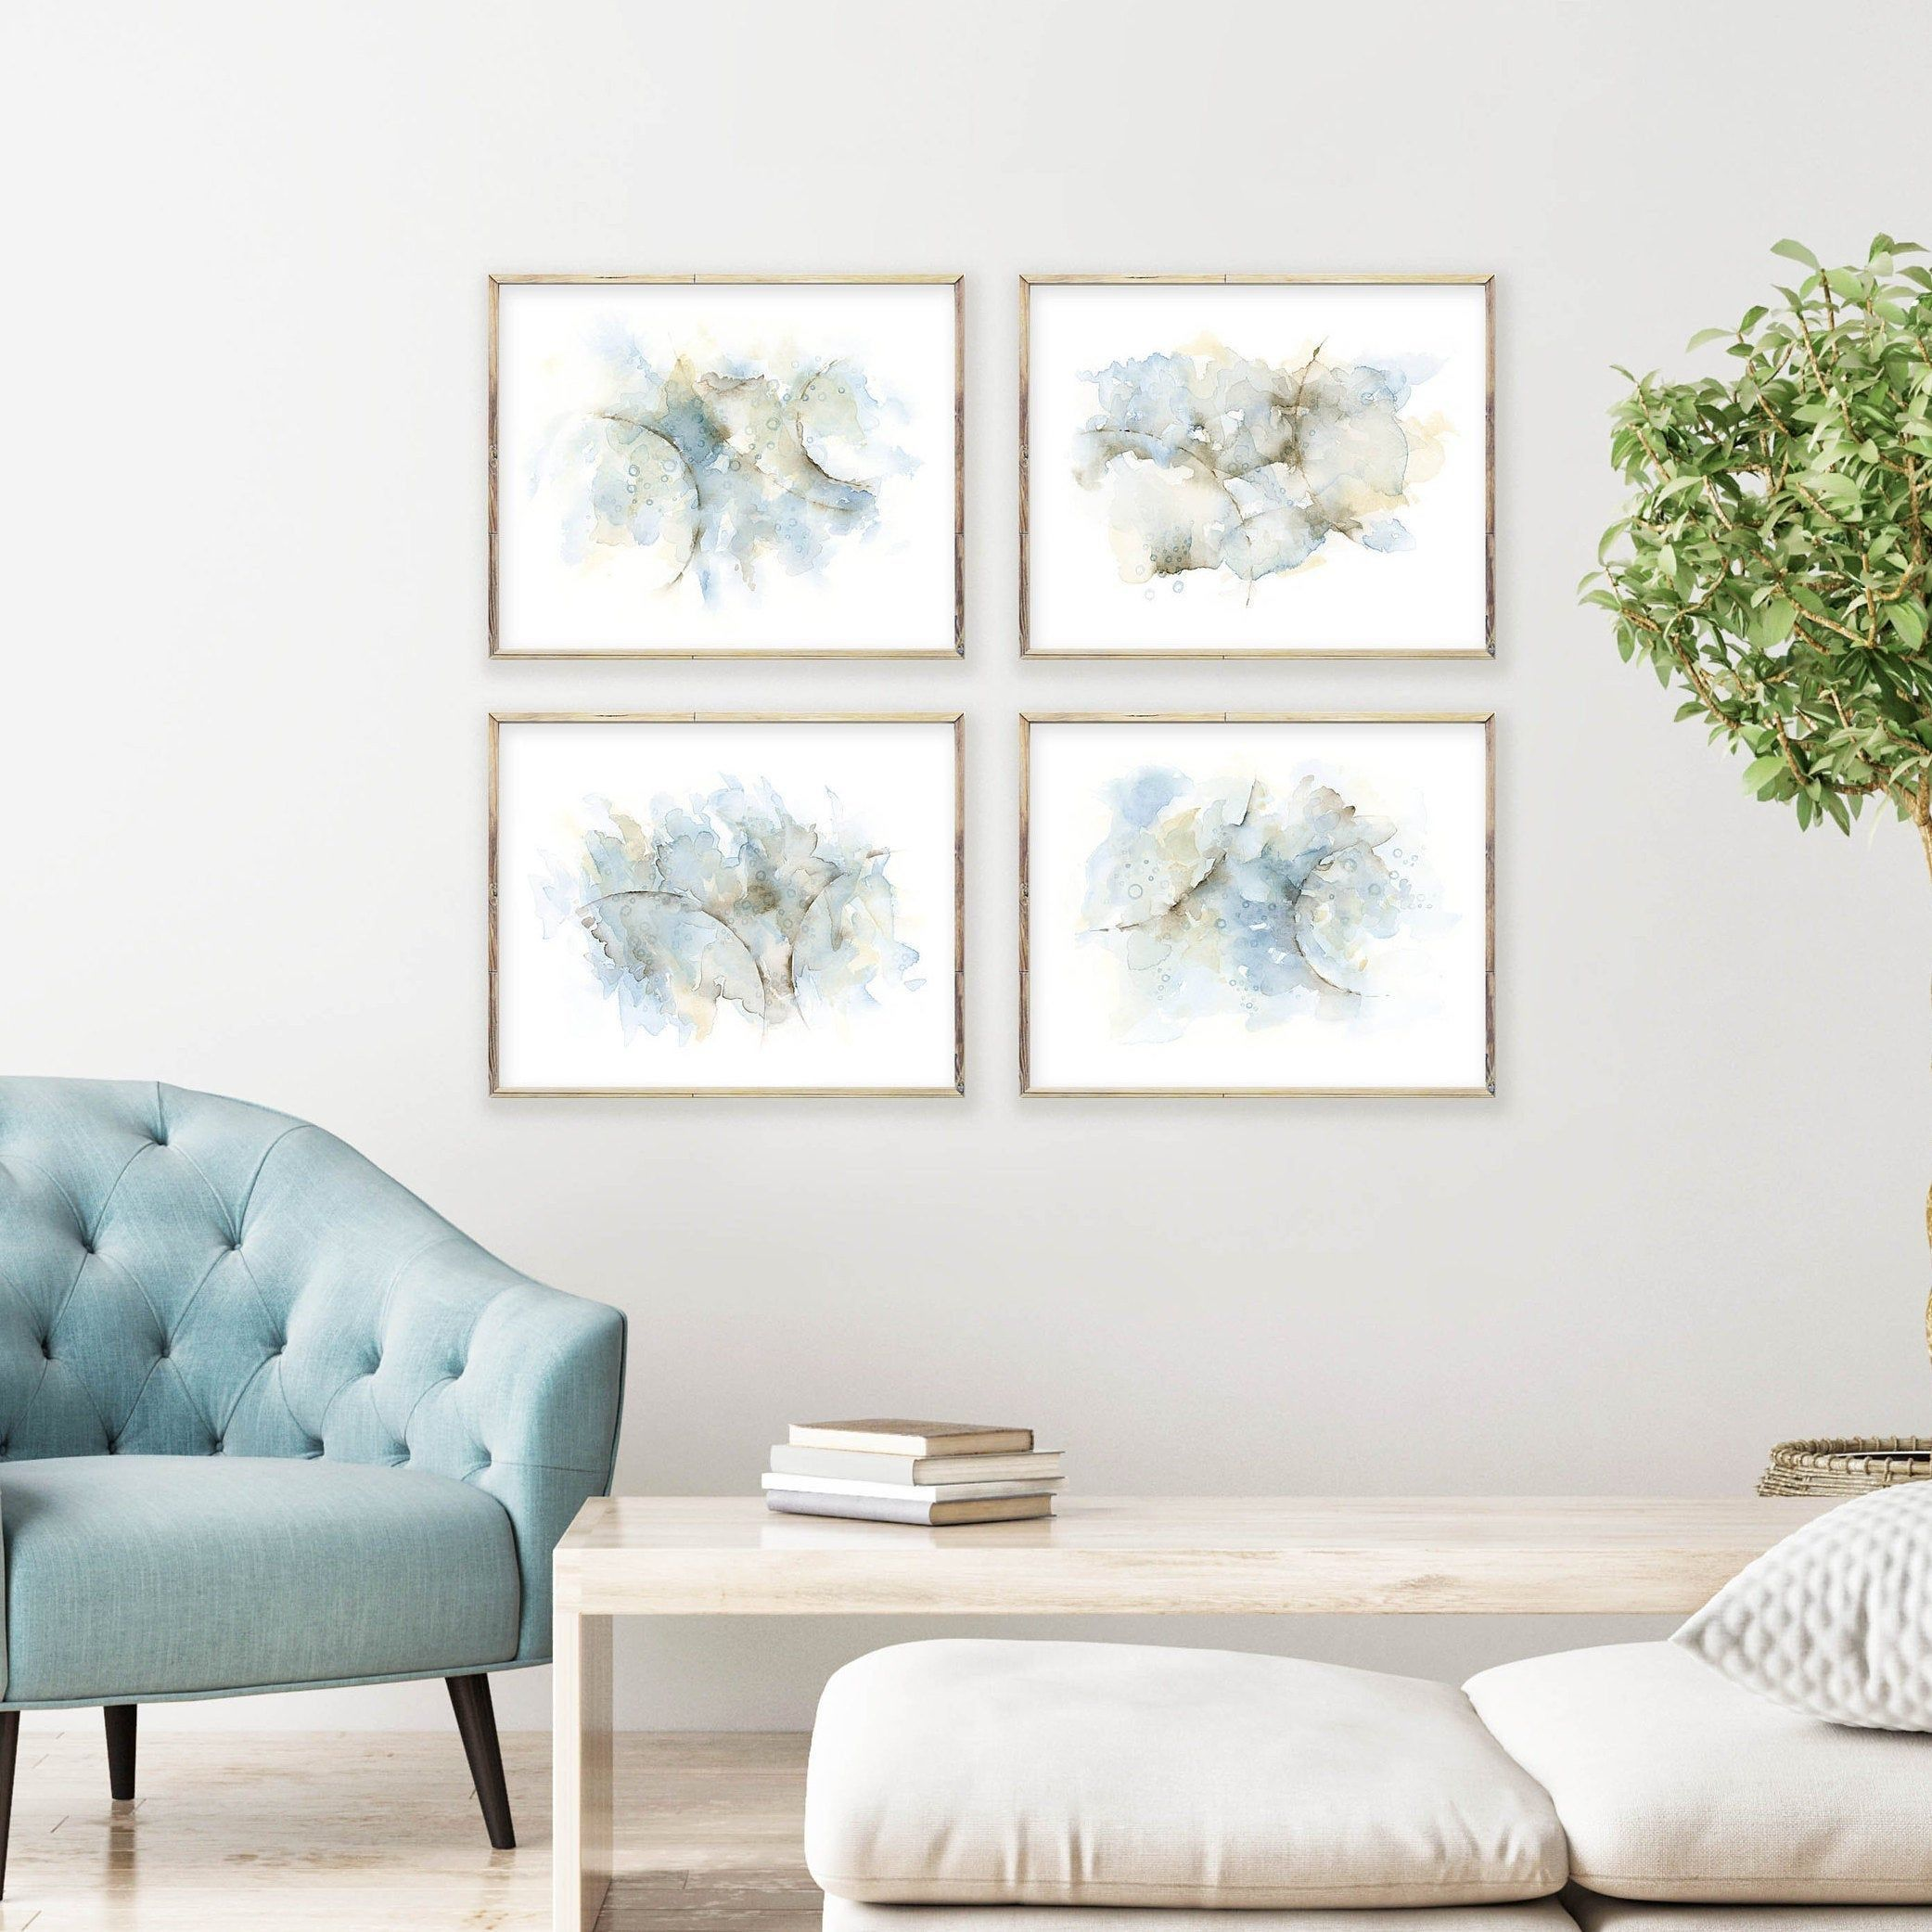 4 Piece Wall Art Abstract Painting Watercolor Art Print Set Etsy Brown And Blue Living Room Wall Art Living Room Wall Decor Bedroom